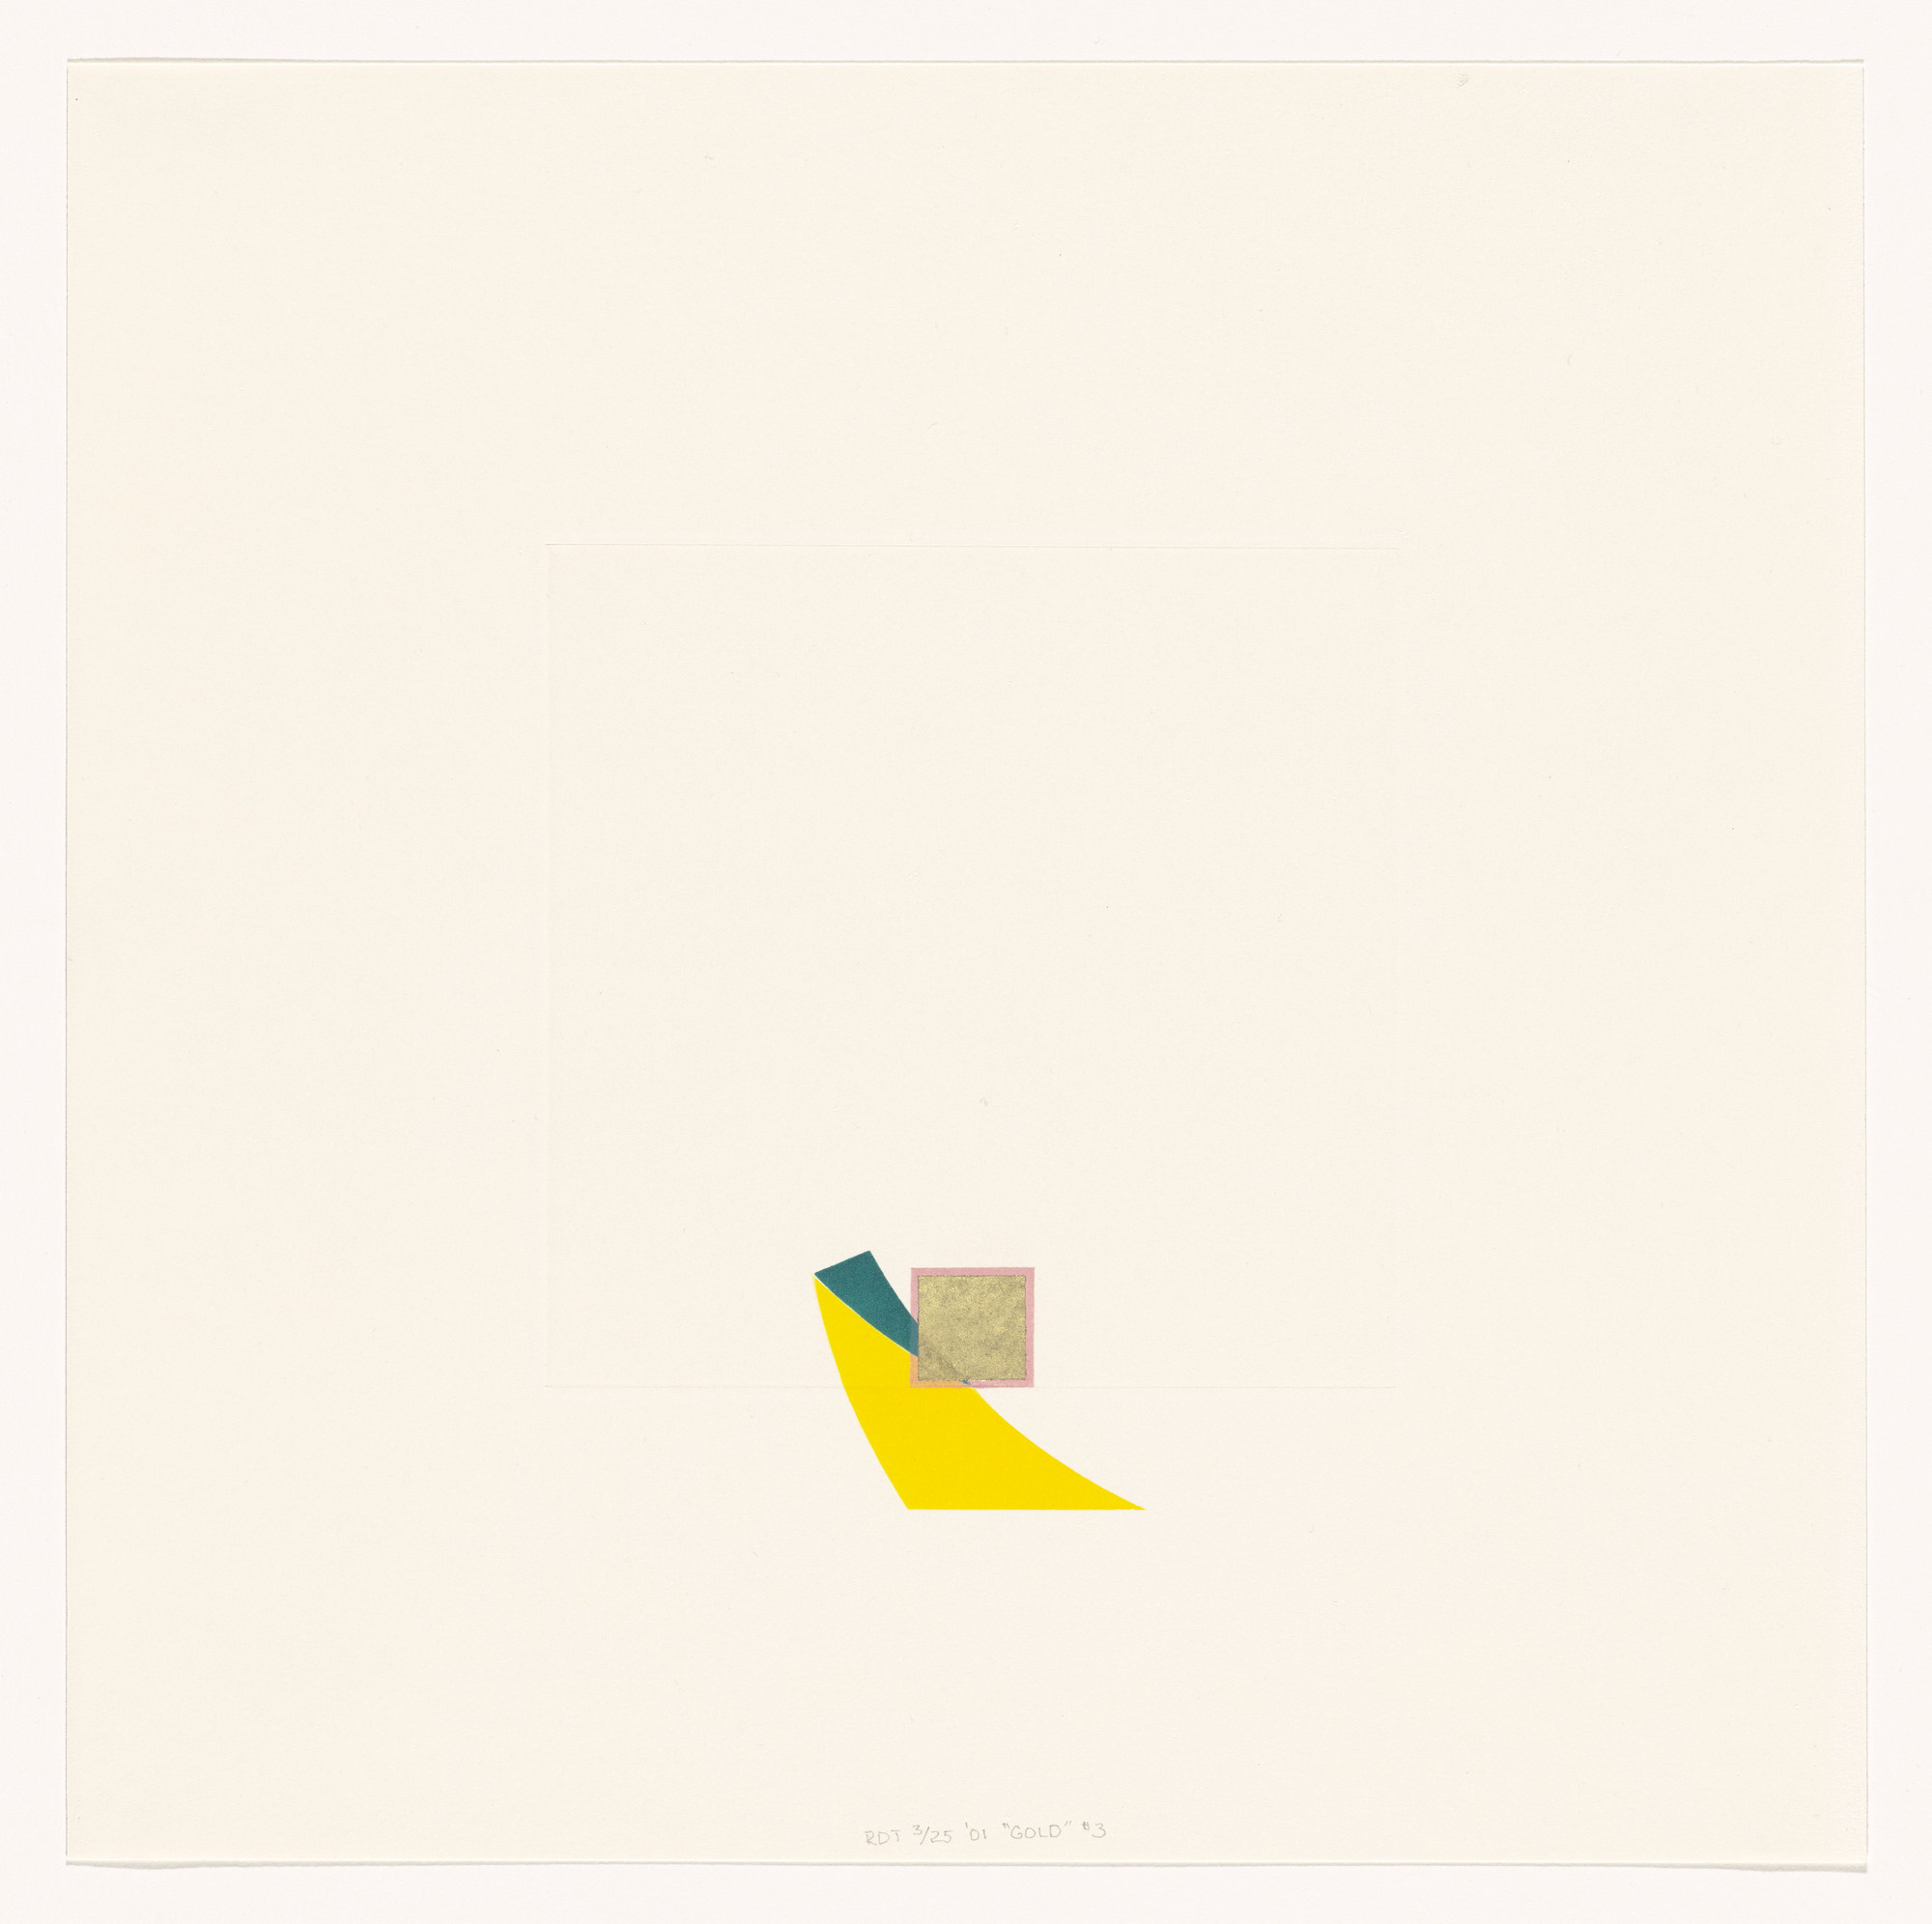 Richard Tuttle. Untitled from Gold. 2001